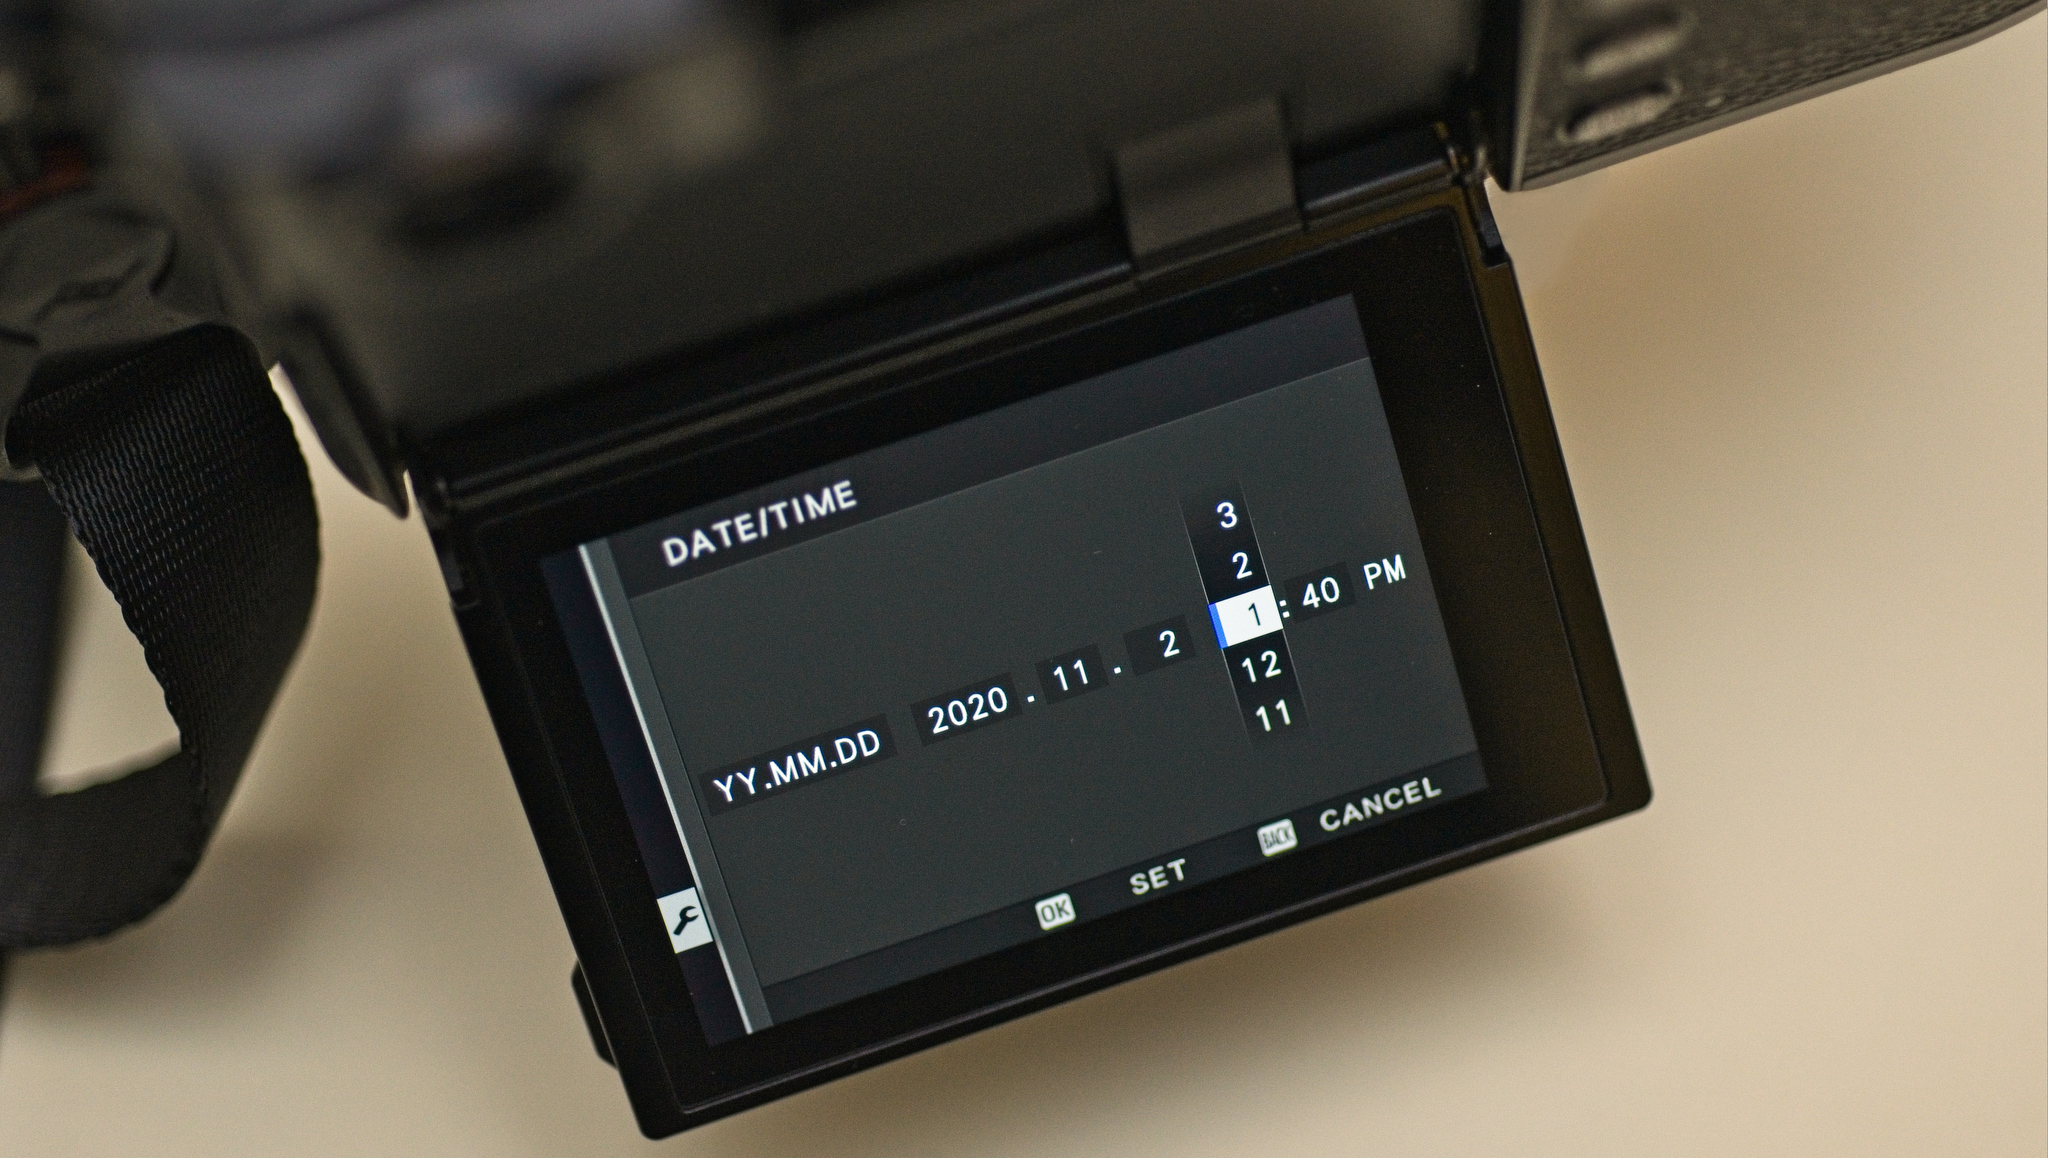 Setting the camera clock time in the Date and Time menu item on a Fijufilm X-Pro3